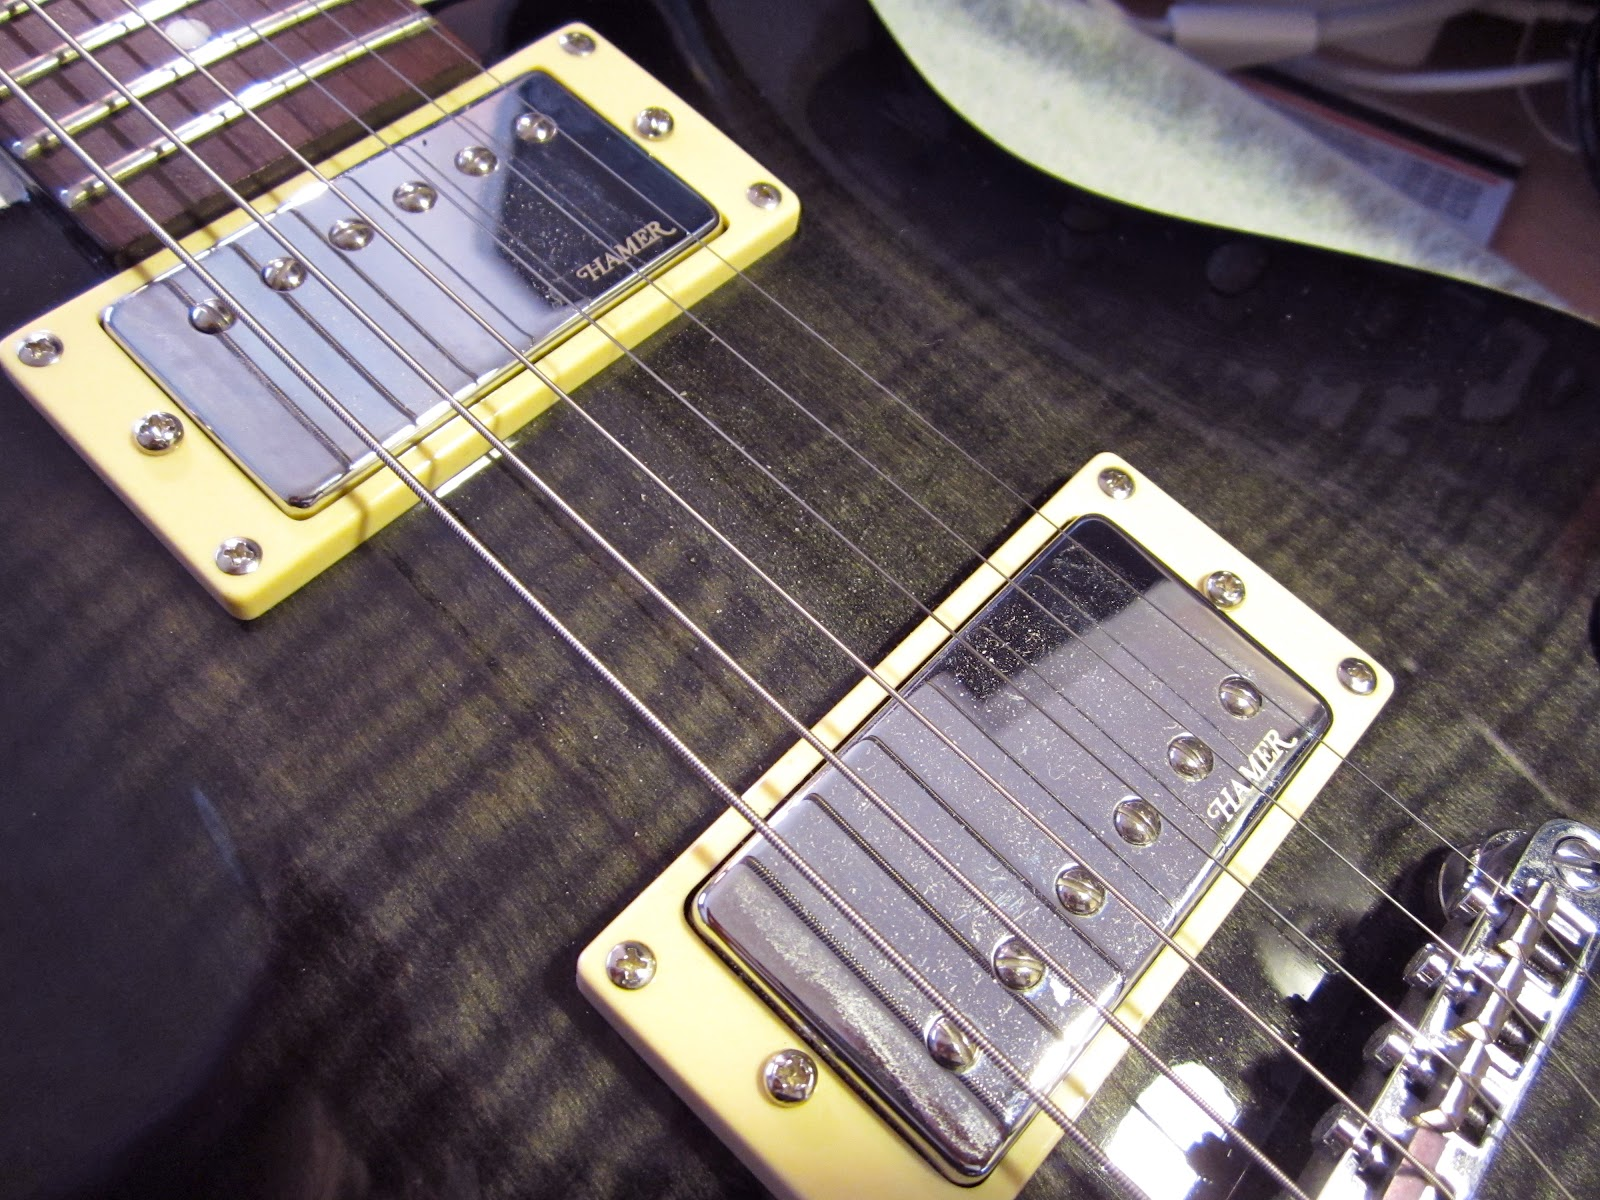 The Harvard Experiments Project 2 Pickup Replacement Hamer Xt Used Gibsonstyle Humbucking Set W Wiring Pots Switch And These Pickups Gotta Go